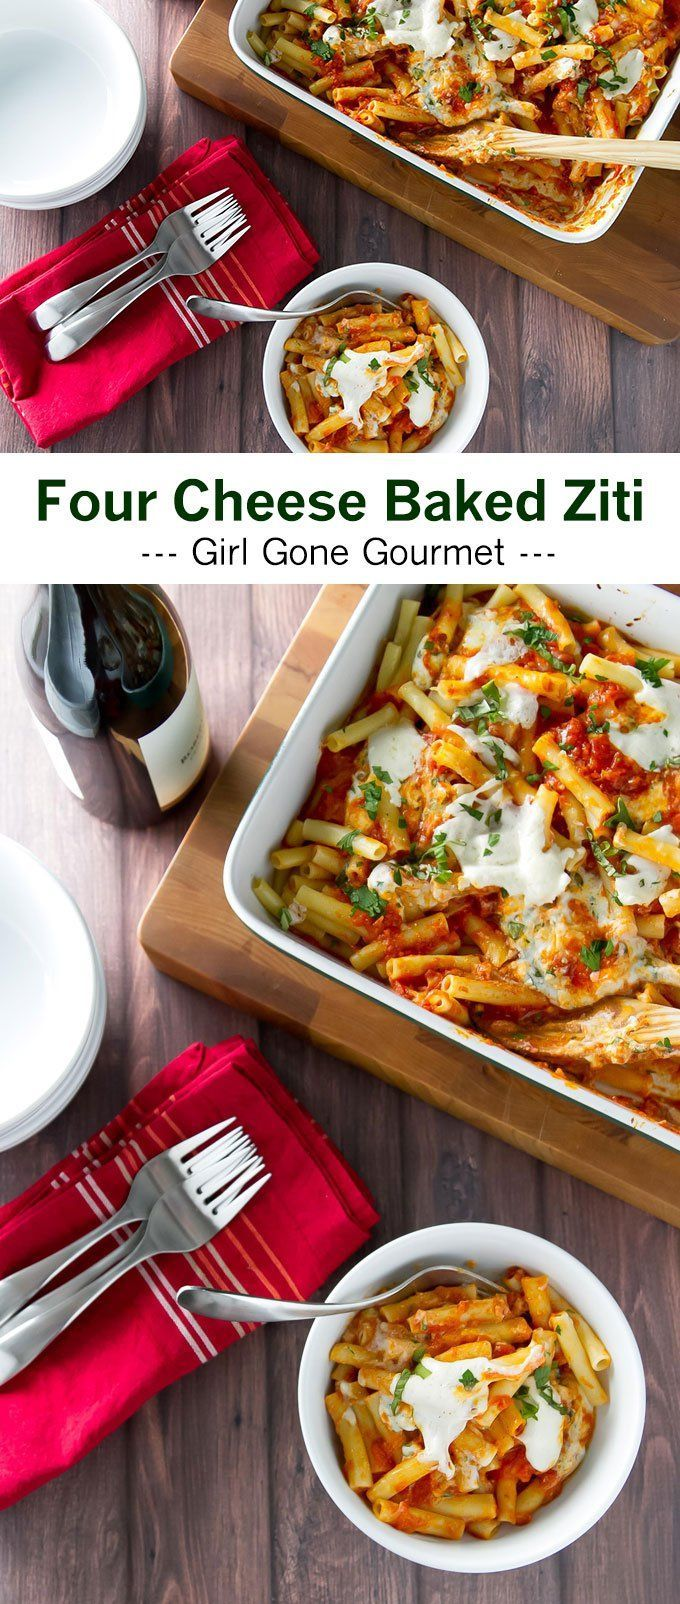 Four cheese ziti is a go-to favorite! This version has pockets of melty cheese layered with pasta and tomato sauce | girlgonegourmet.com